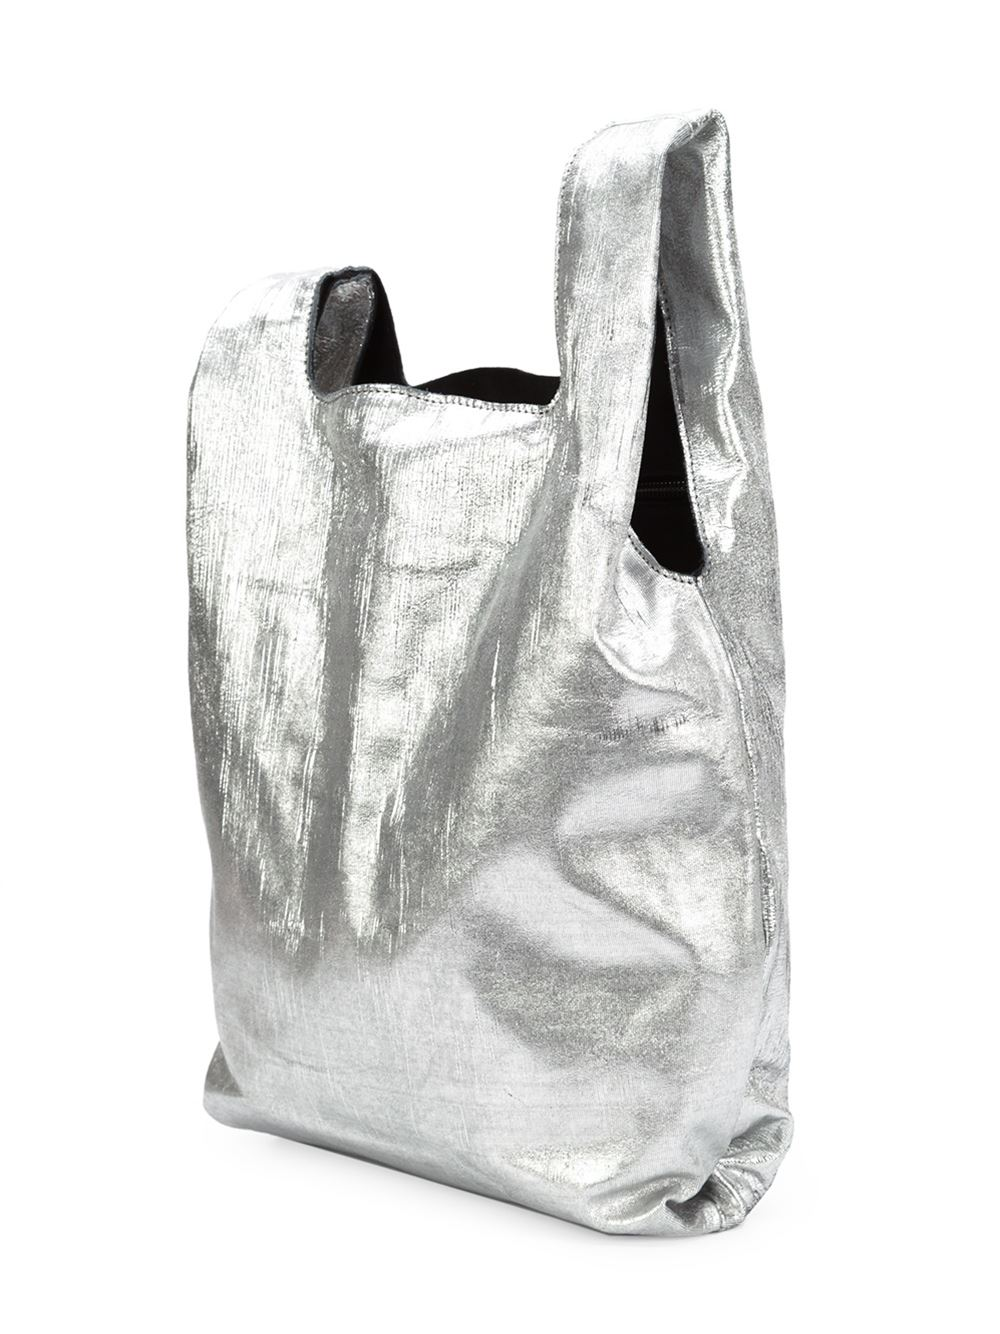 Maison Margiela Distressed Shopping Bag $1,390.